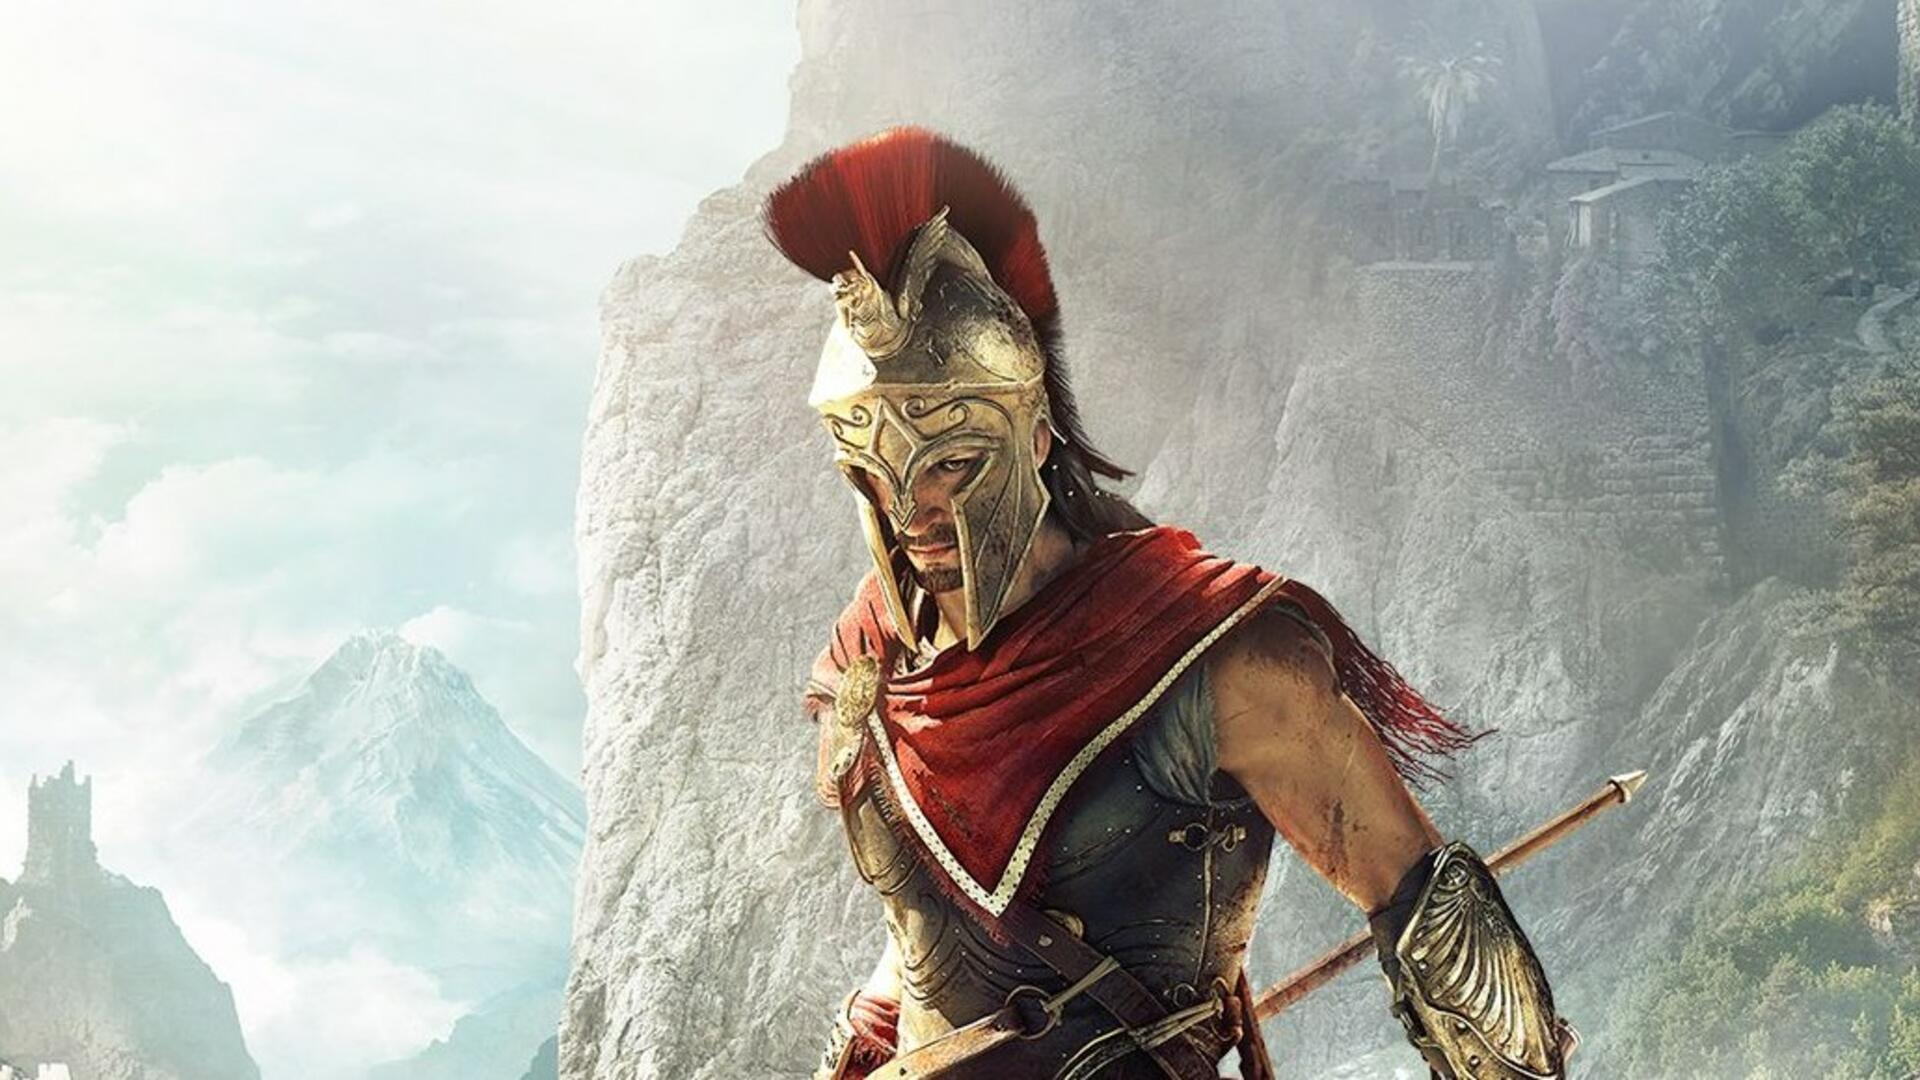 Twitch Prime Members Get an Exclusive Assassin's Creed Odyssey Armor Set, Here's How